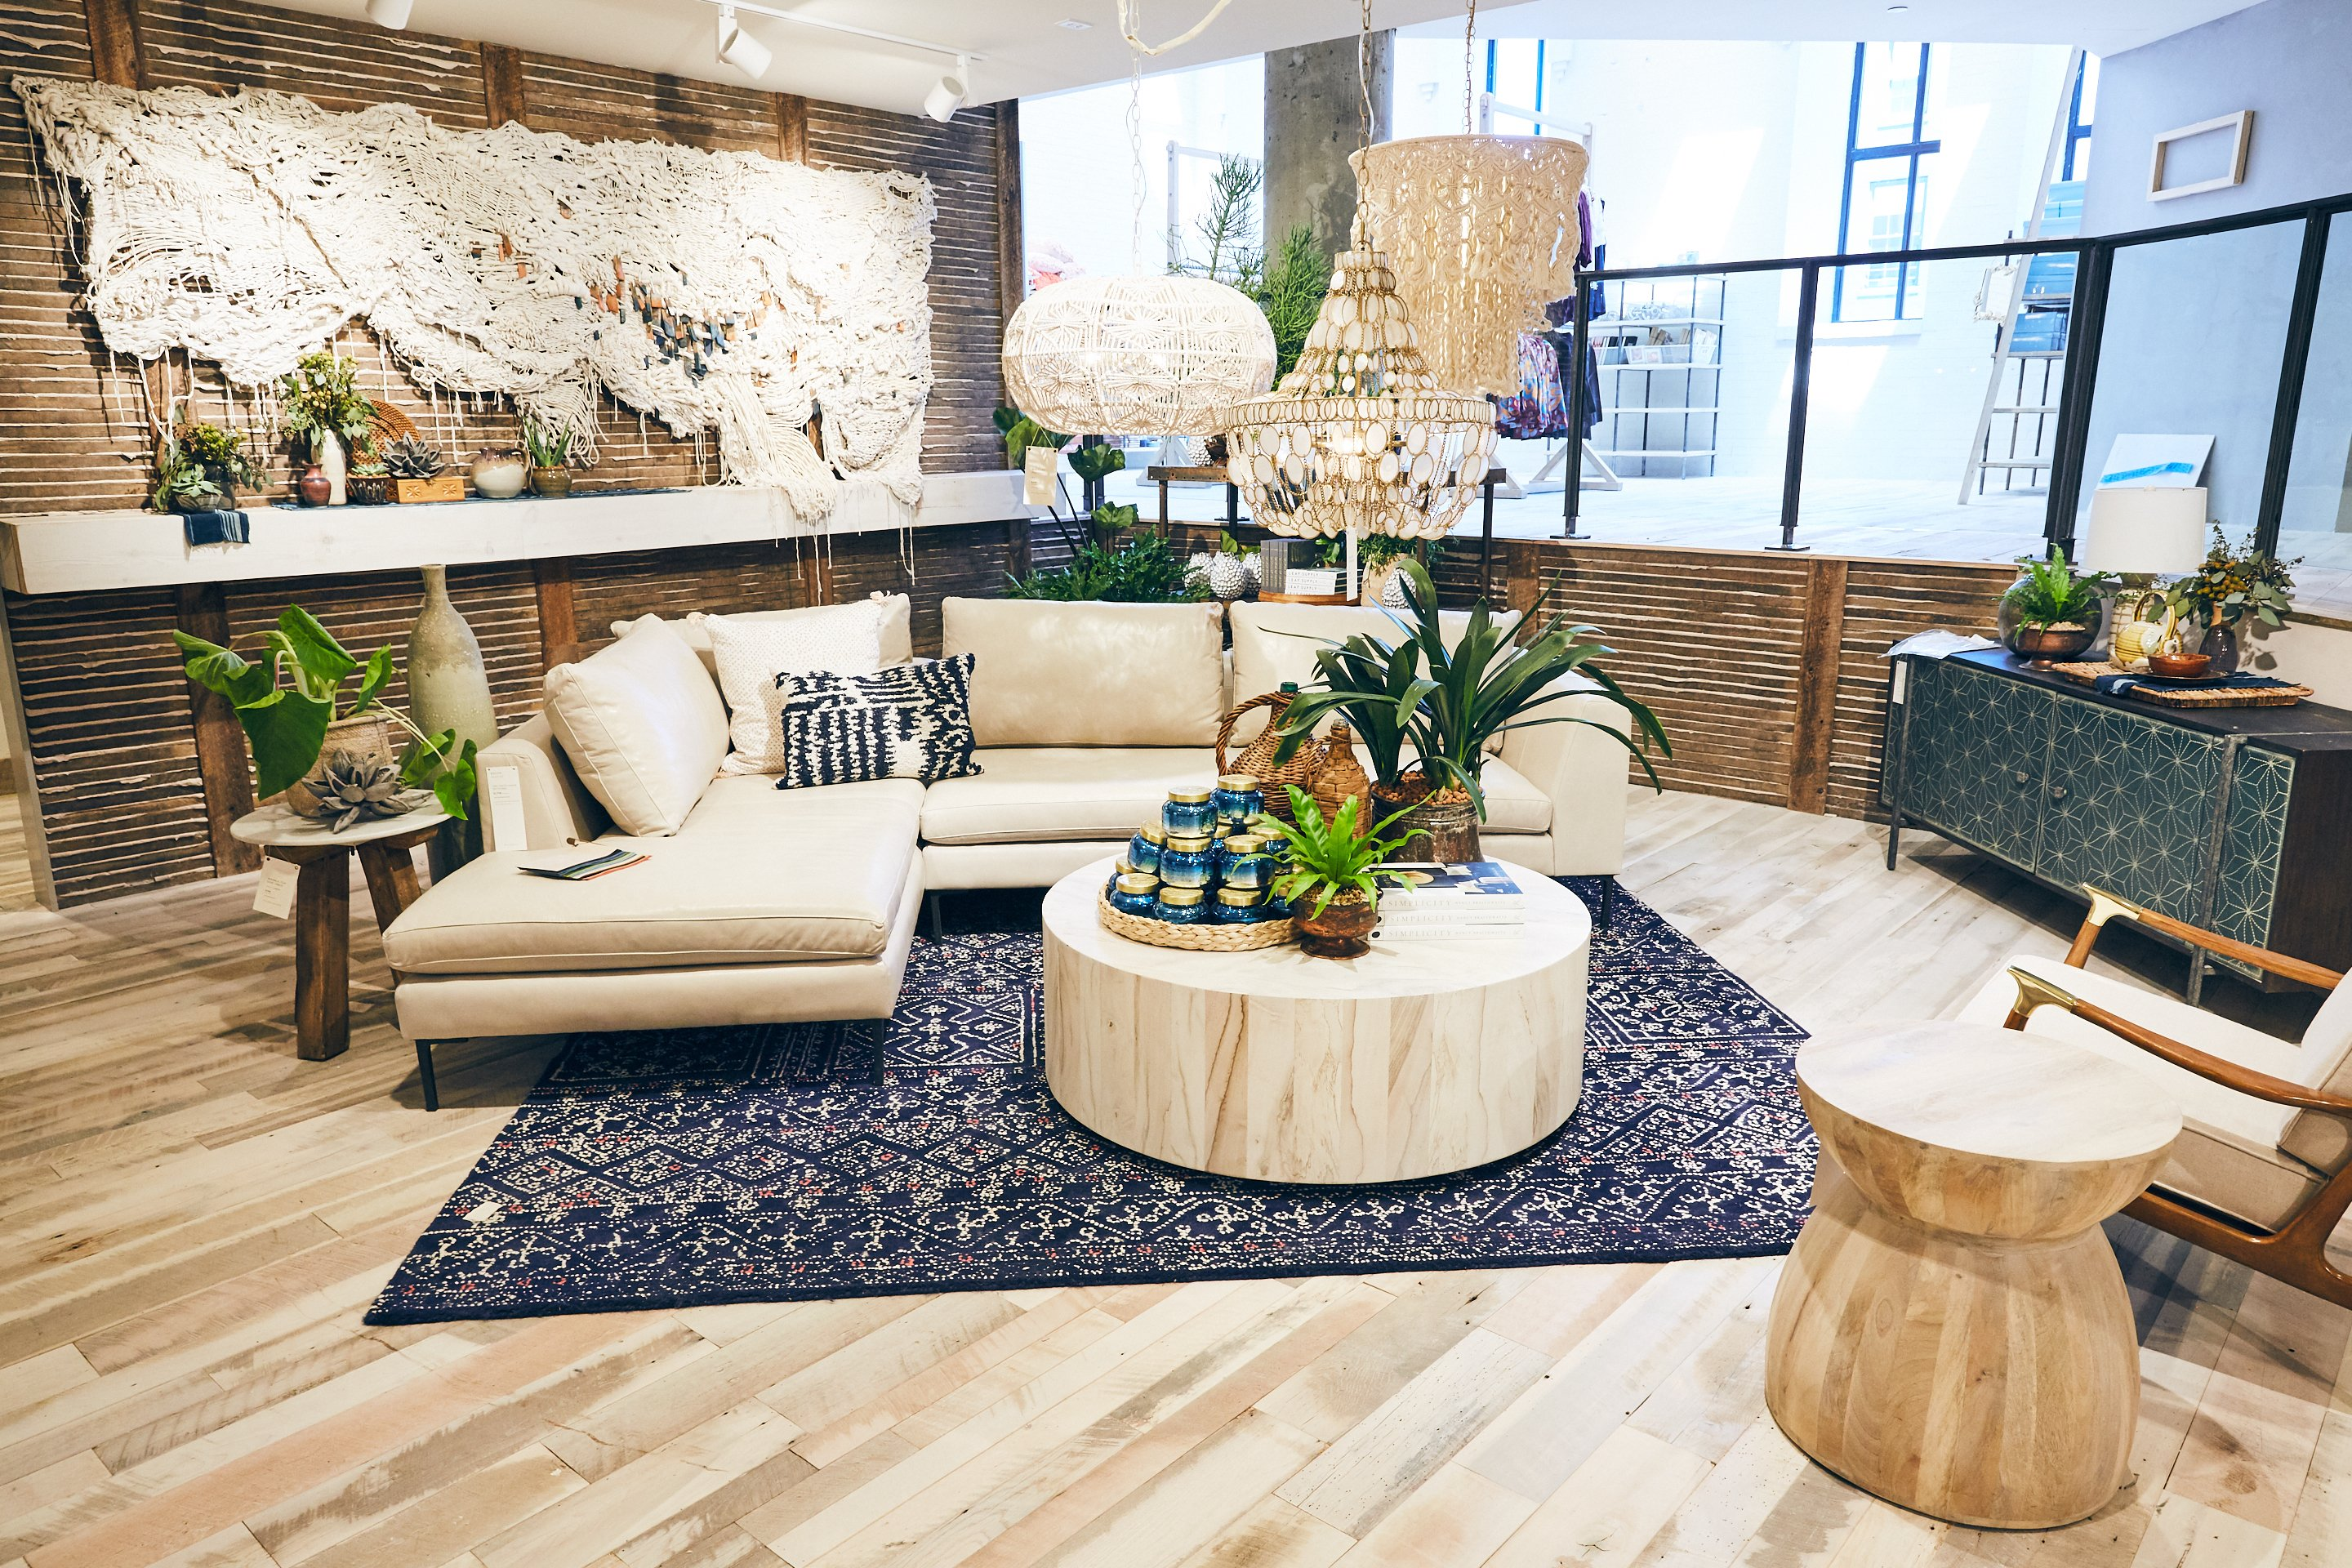 The New Anthropologie U0026 Co. Is Greatly Expanded From The Storeu0027s Former  Space On M Street. The Renovations Added A Third Floor To Create 15,000  Square Feet ...